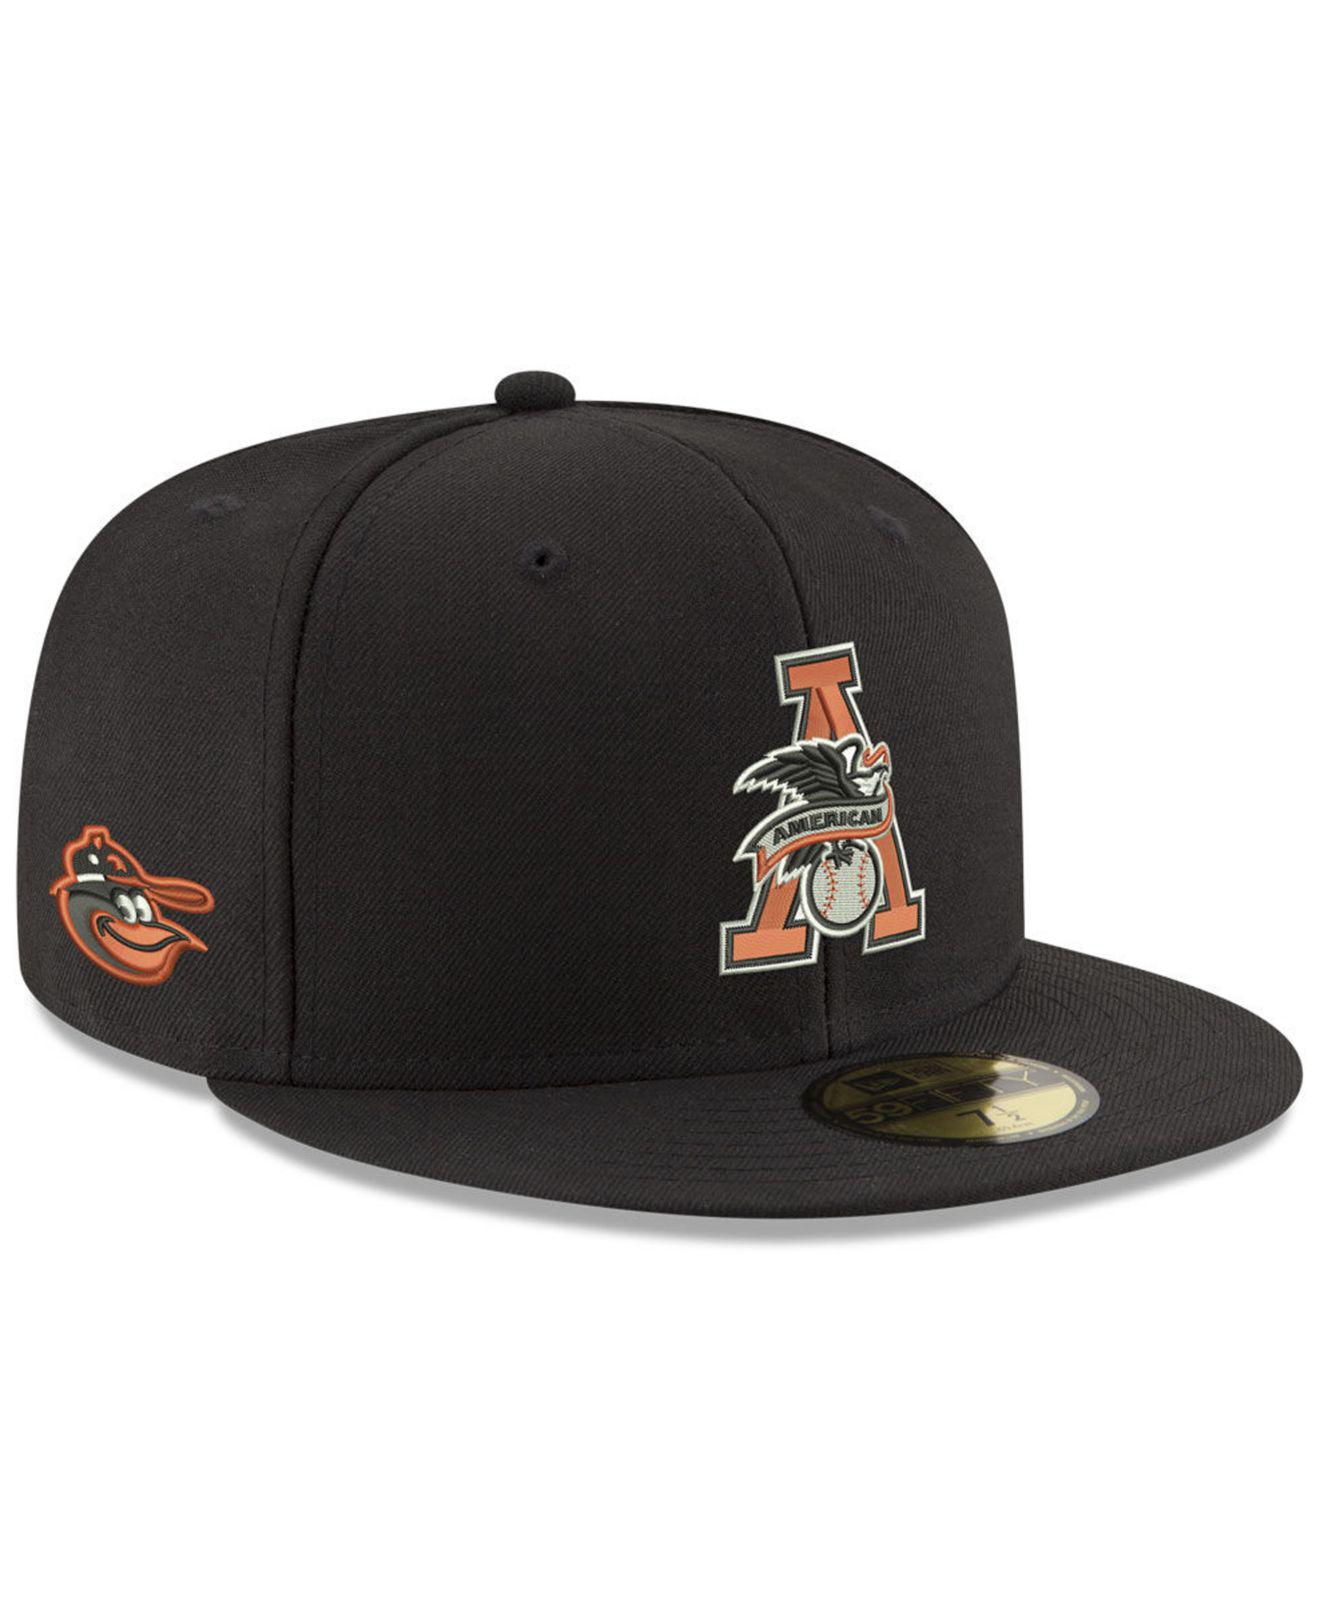 the best attitude b6b4b 1a759 ... usa ktz. mens black baltimore orioles league front 59fifty fitted cap  bae82 66f2b